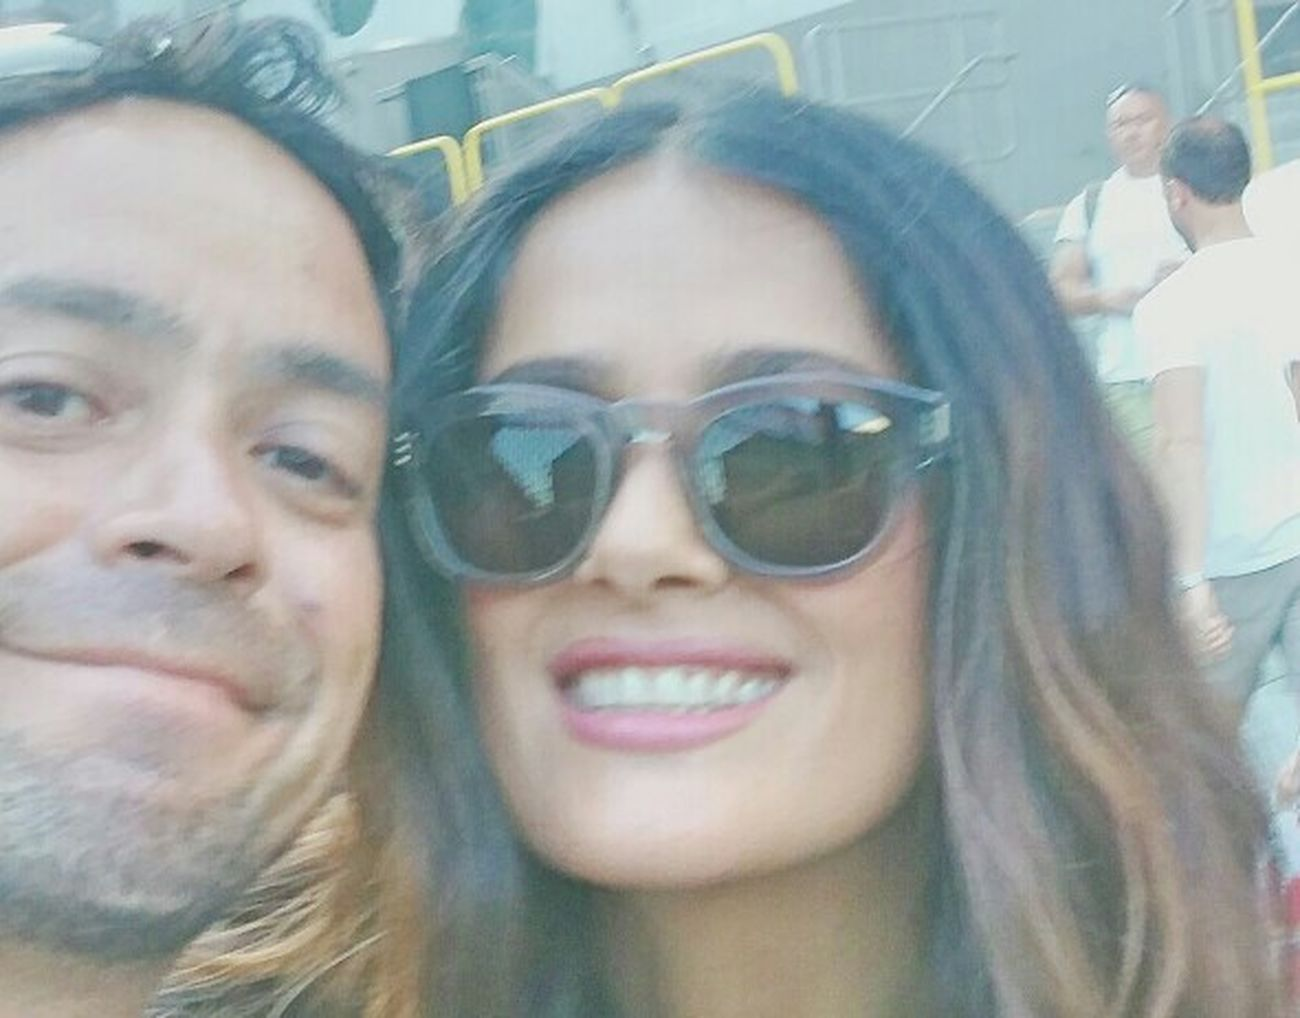 ThatsMe Thats Me  Thats Me! Thats Me ♥ and Salma Hayek SalmaHayek Latinagoddess Latina Goddess Hispanic Woman Moviestar SexyMexican Filmstar Gorgeous ♥ Movie Star Selfieporn Selfiepower Hollywood Her Smile ❤ HerSmileTho Her Smile Is The Greatest Her Smile  I Love Her ! A Woman Wow!! WOW